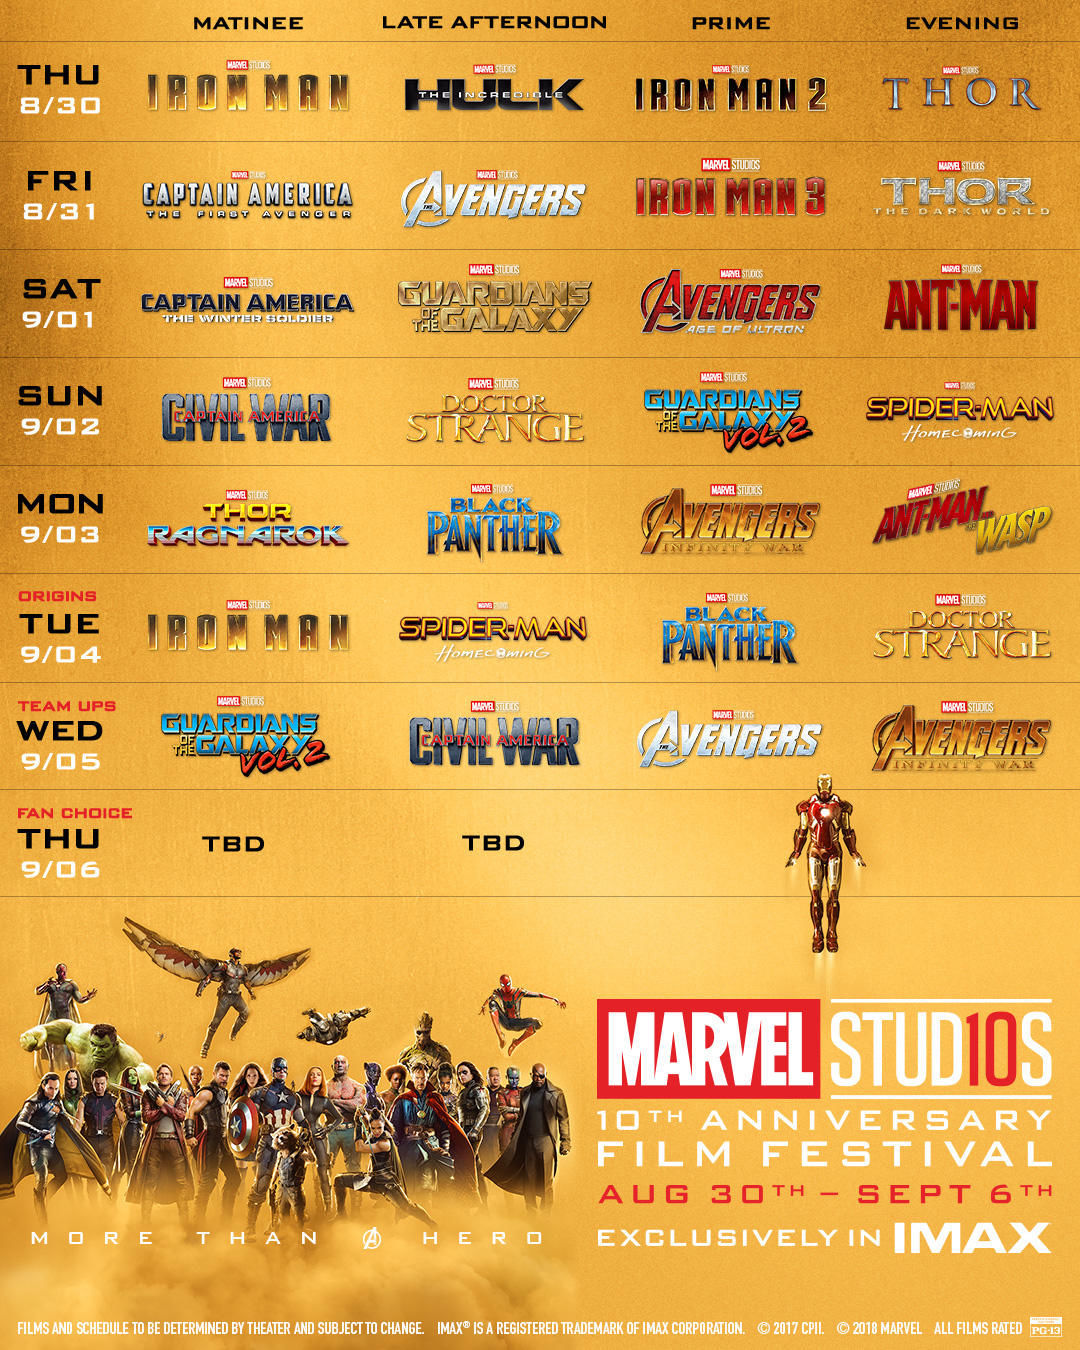 Imax To Host Marvel Film Marathon For MCU's 10-Year Anniversary